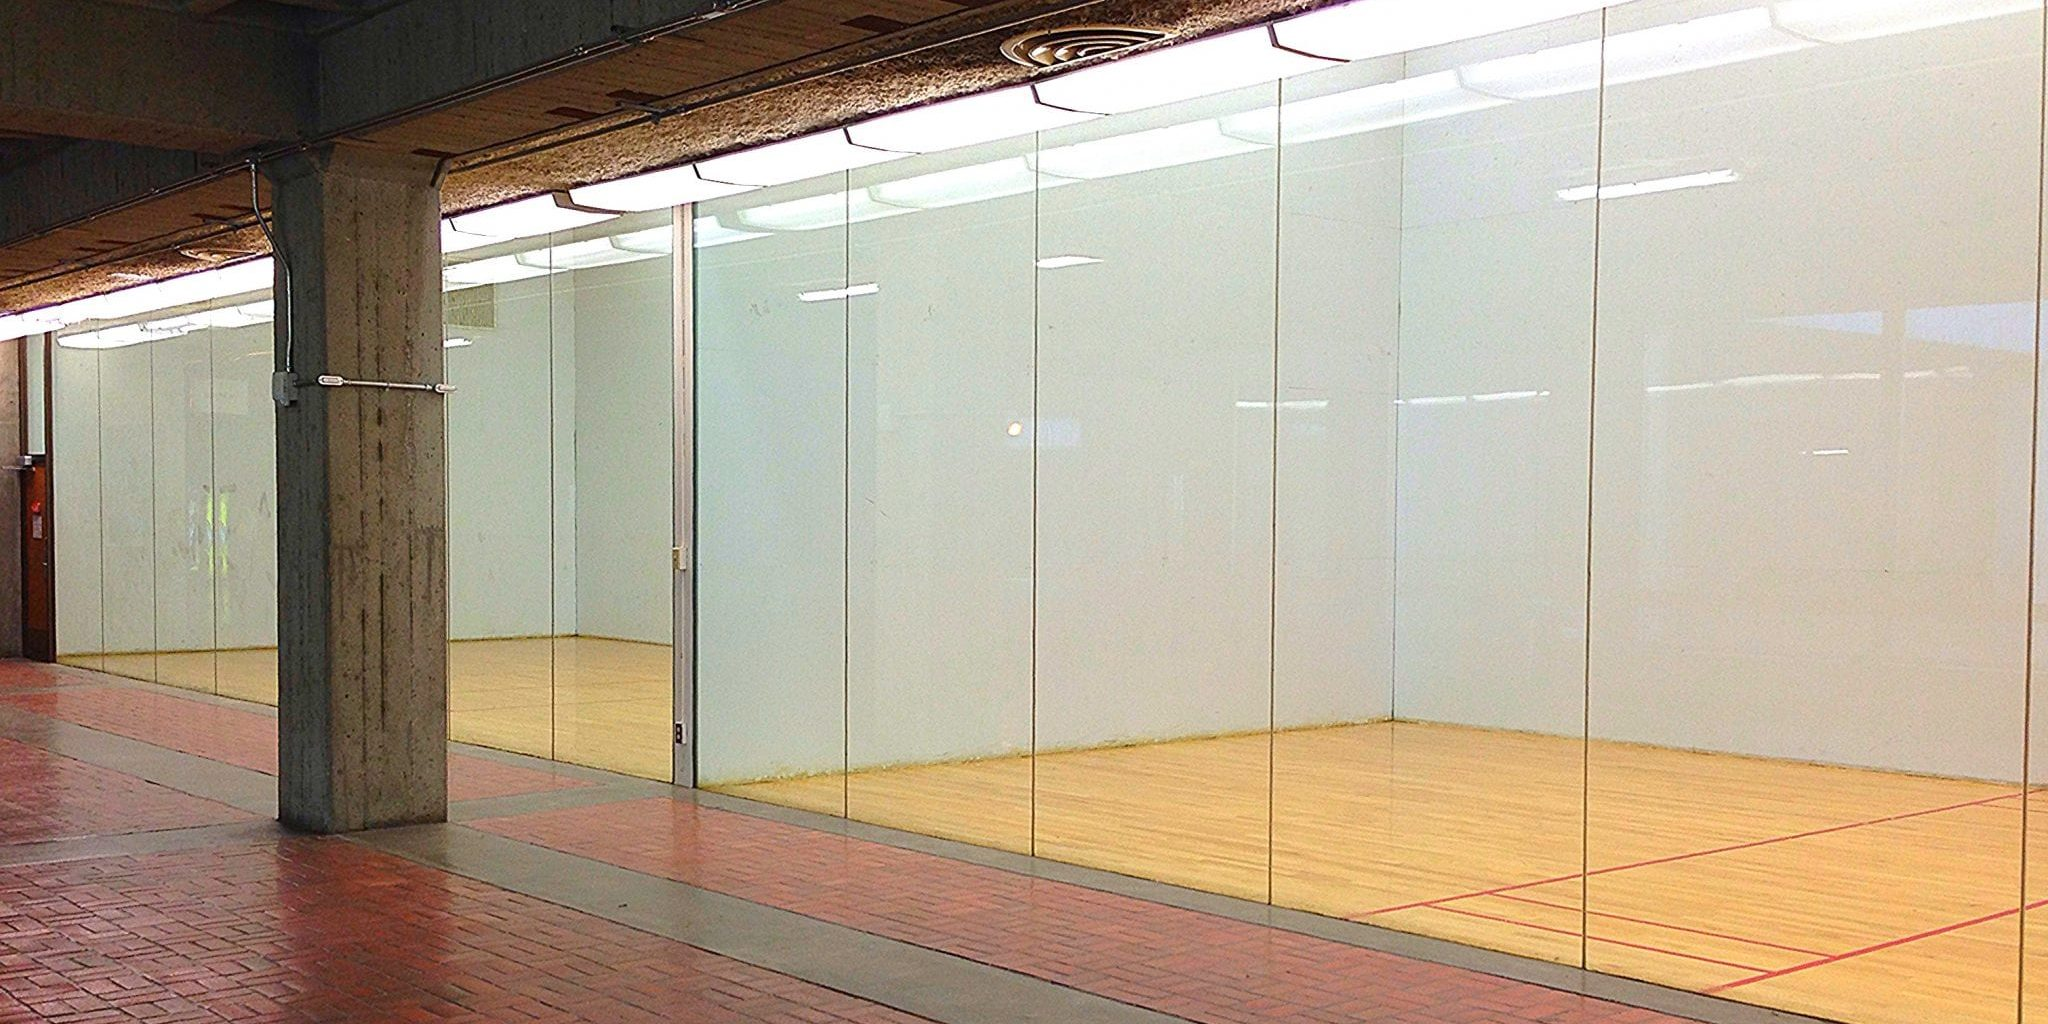 the racquetball courts